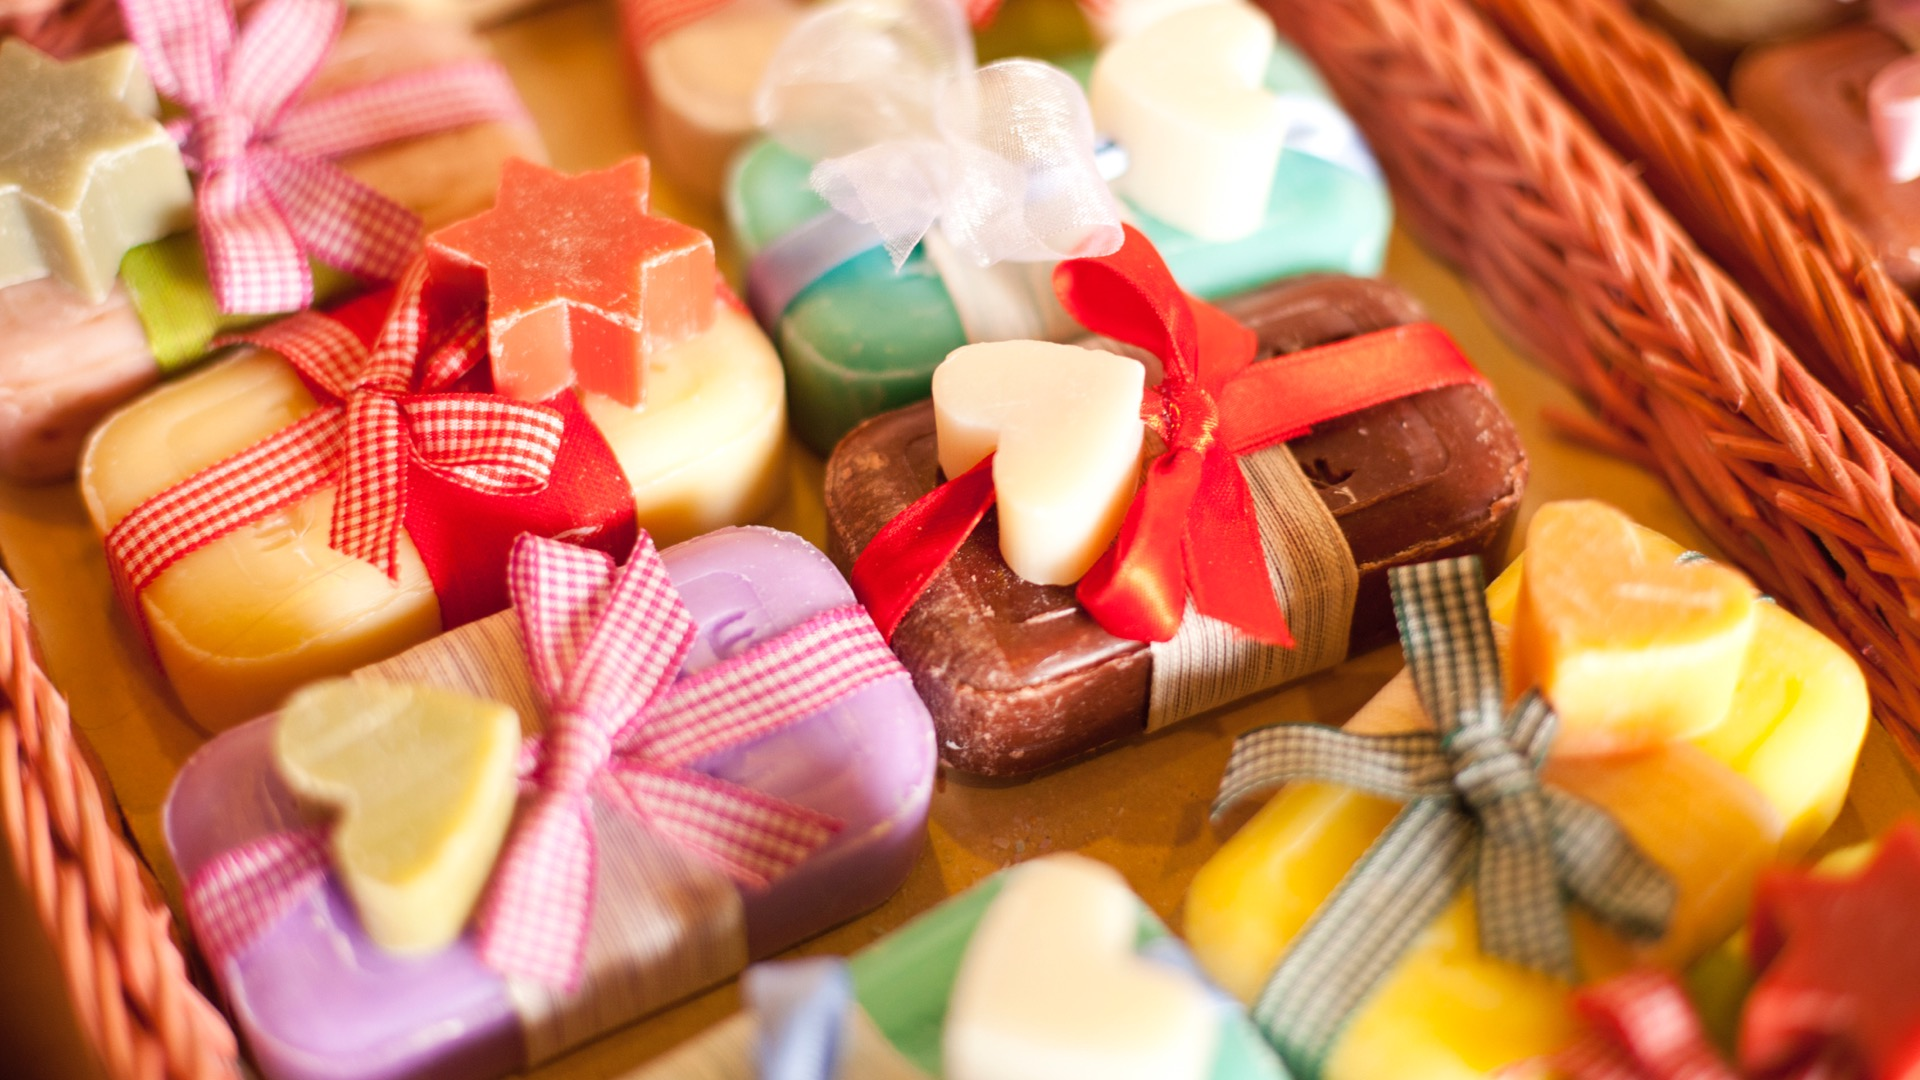 an assortment of handmade soaps on display.